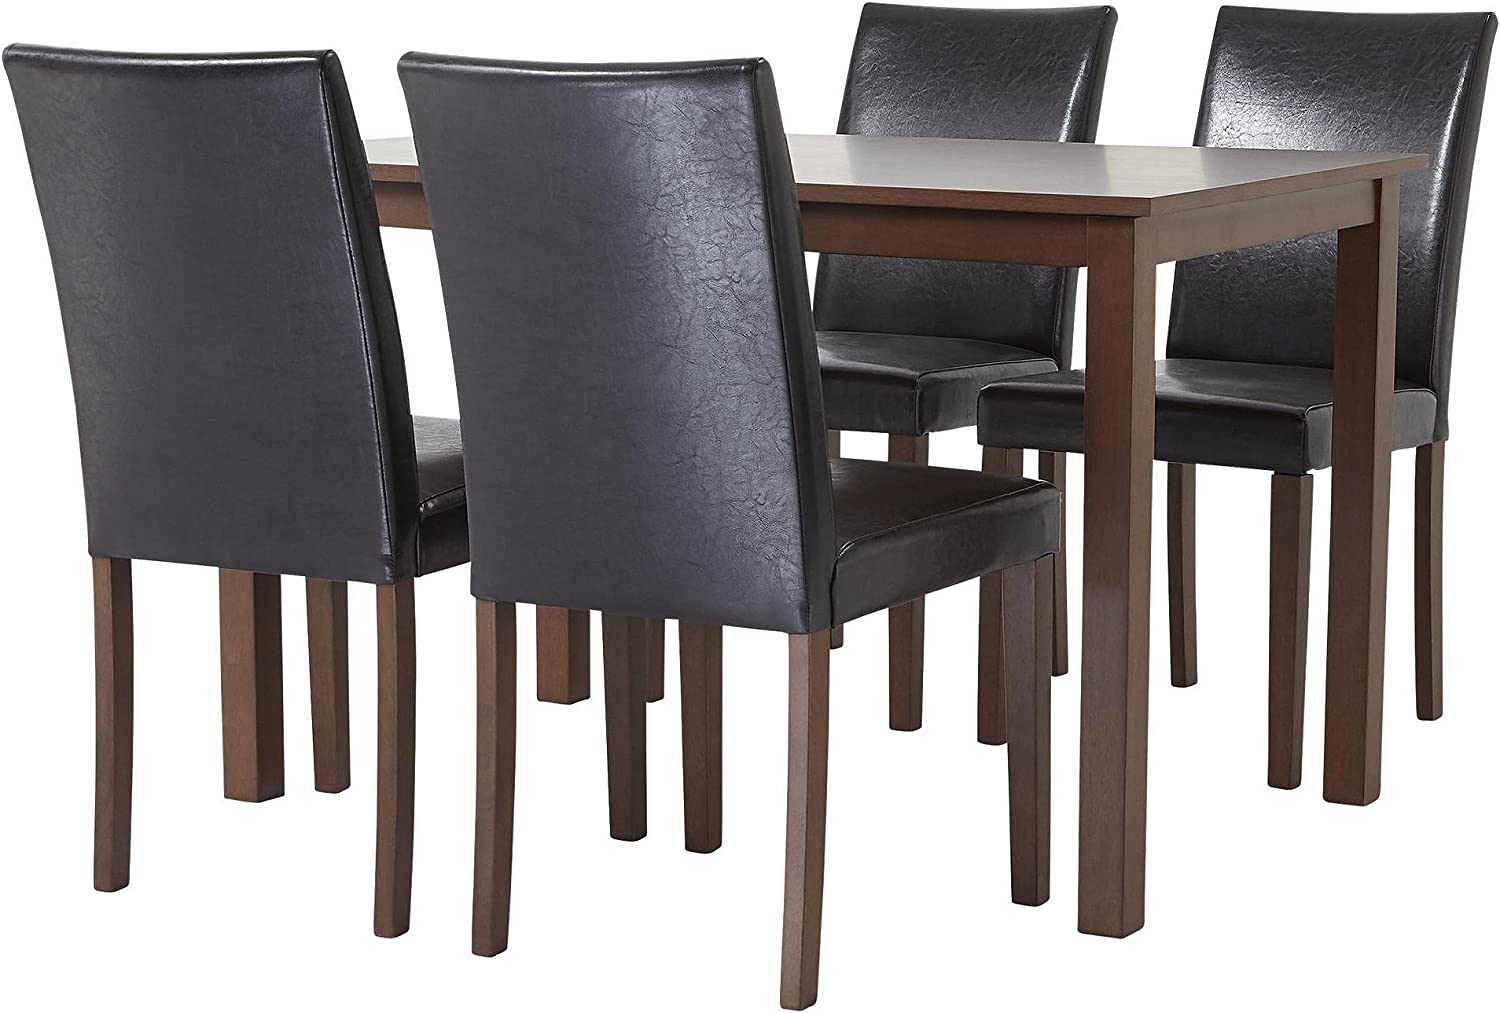 Tesco NEW Claydon Walnut Effect 11 Seat Dining Table & Chair Set - Chocolate